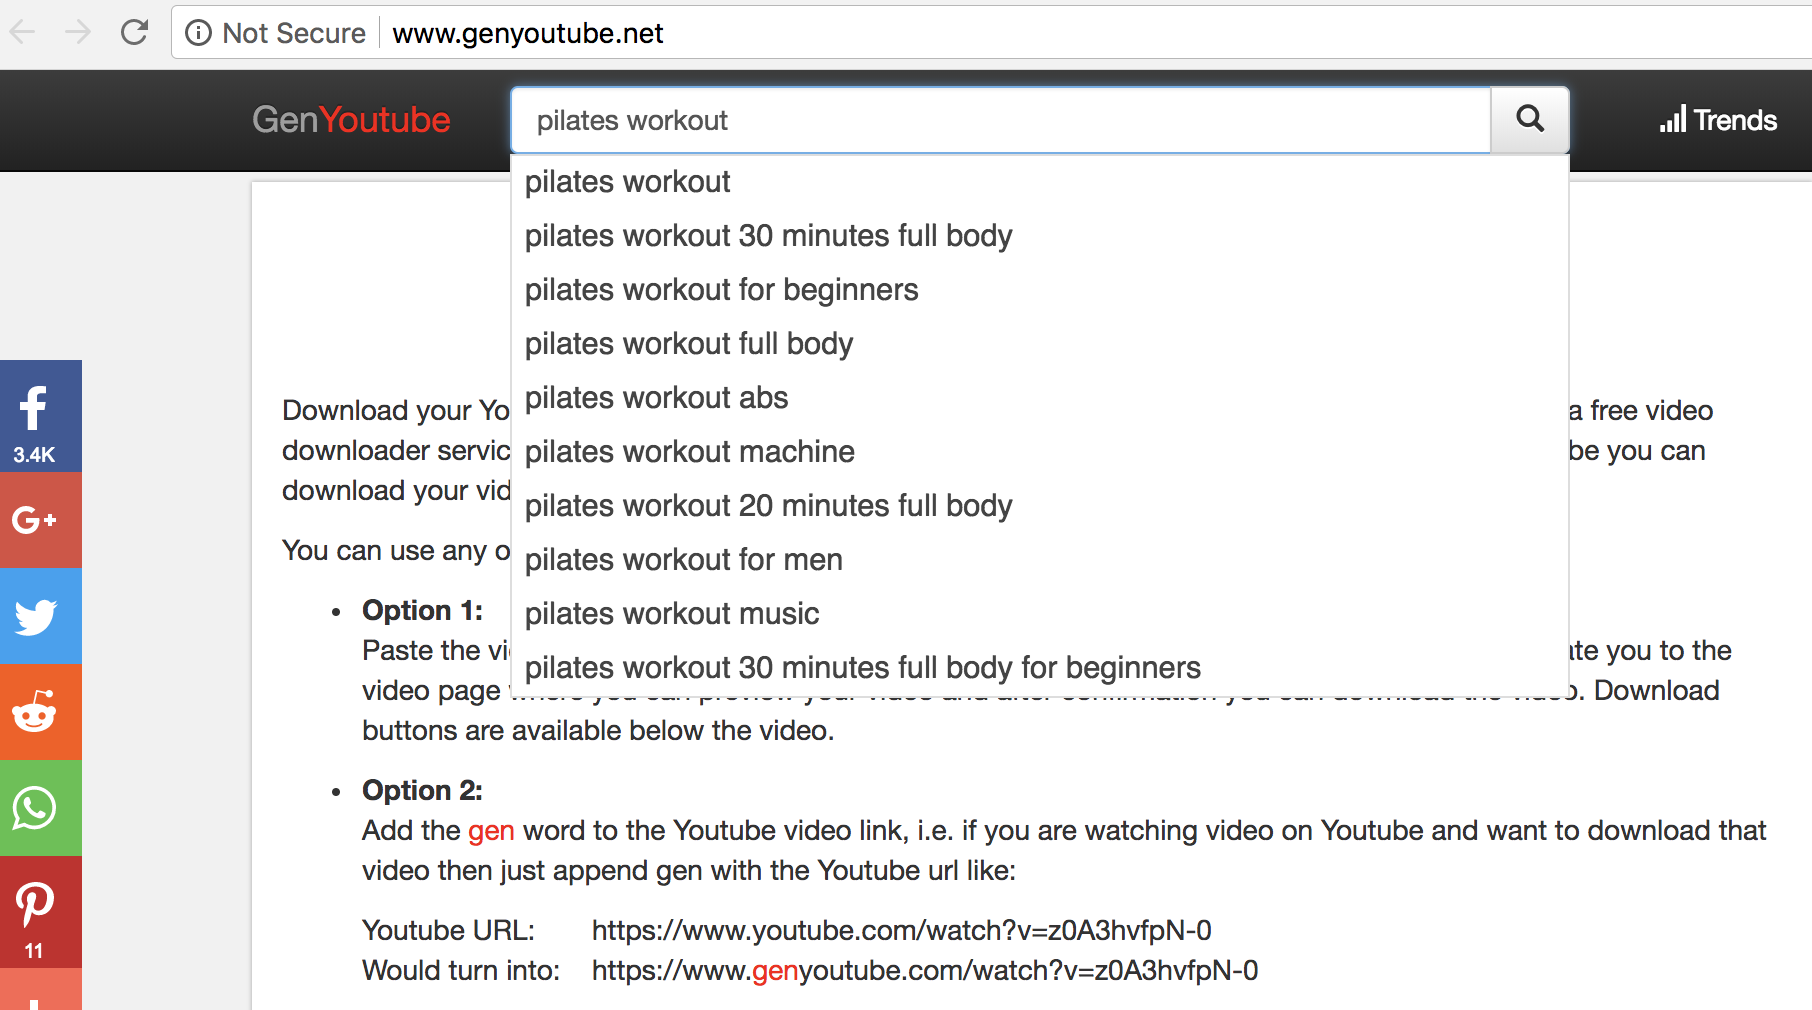 Search for GenYouTube